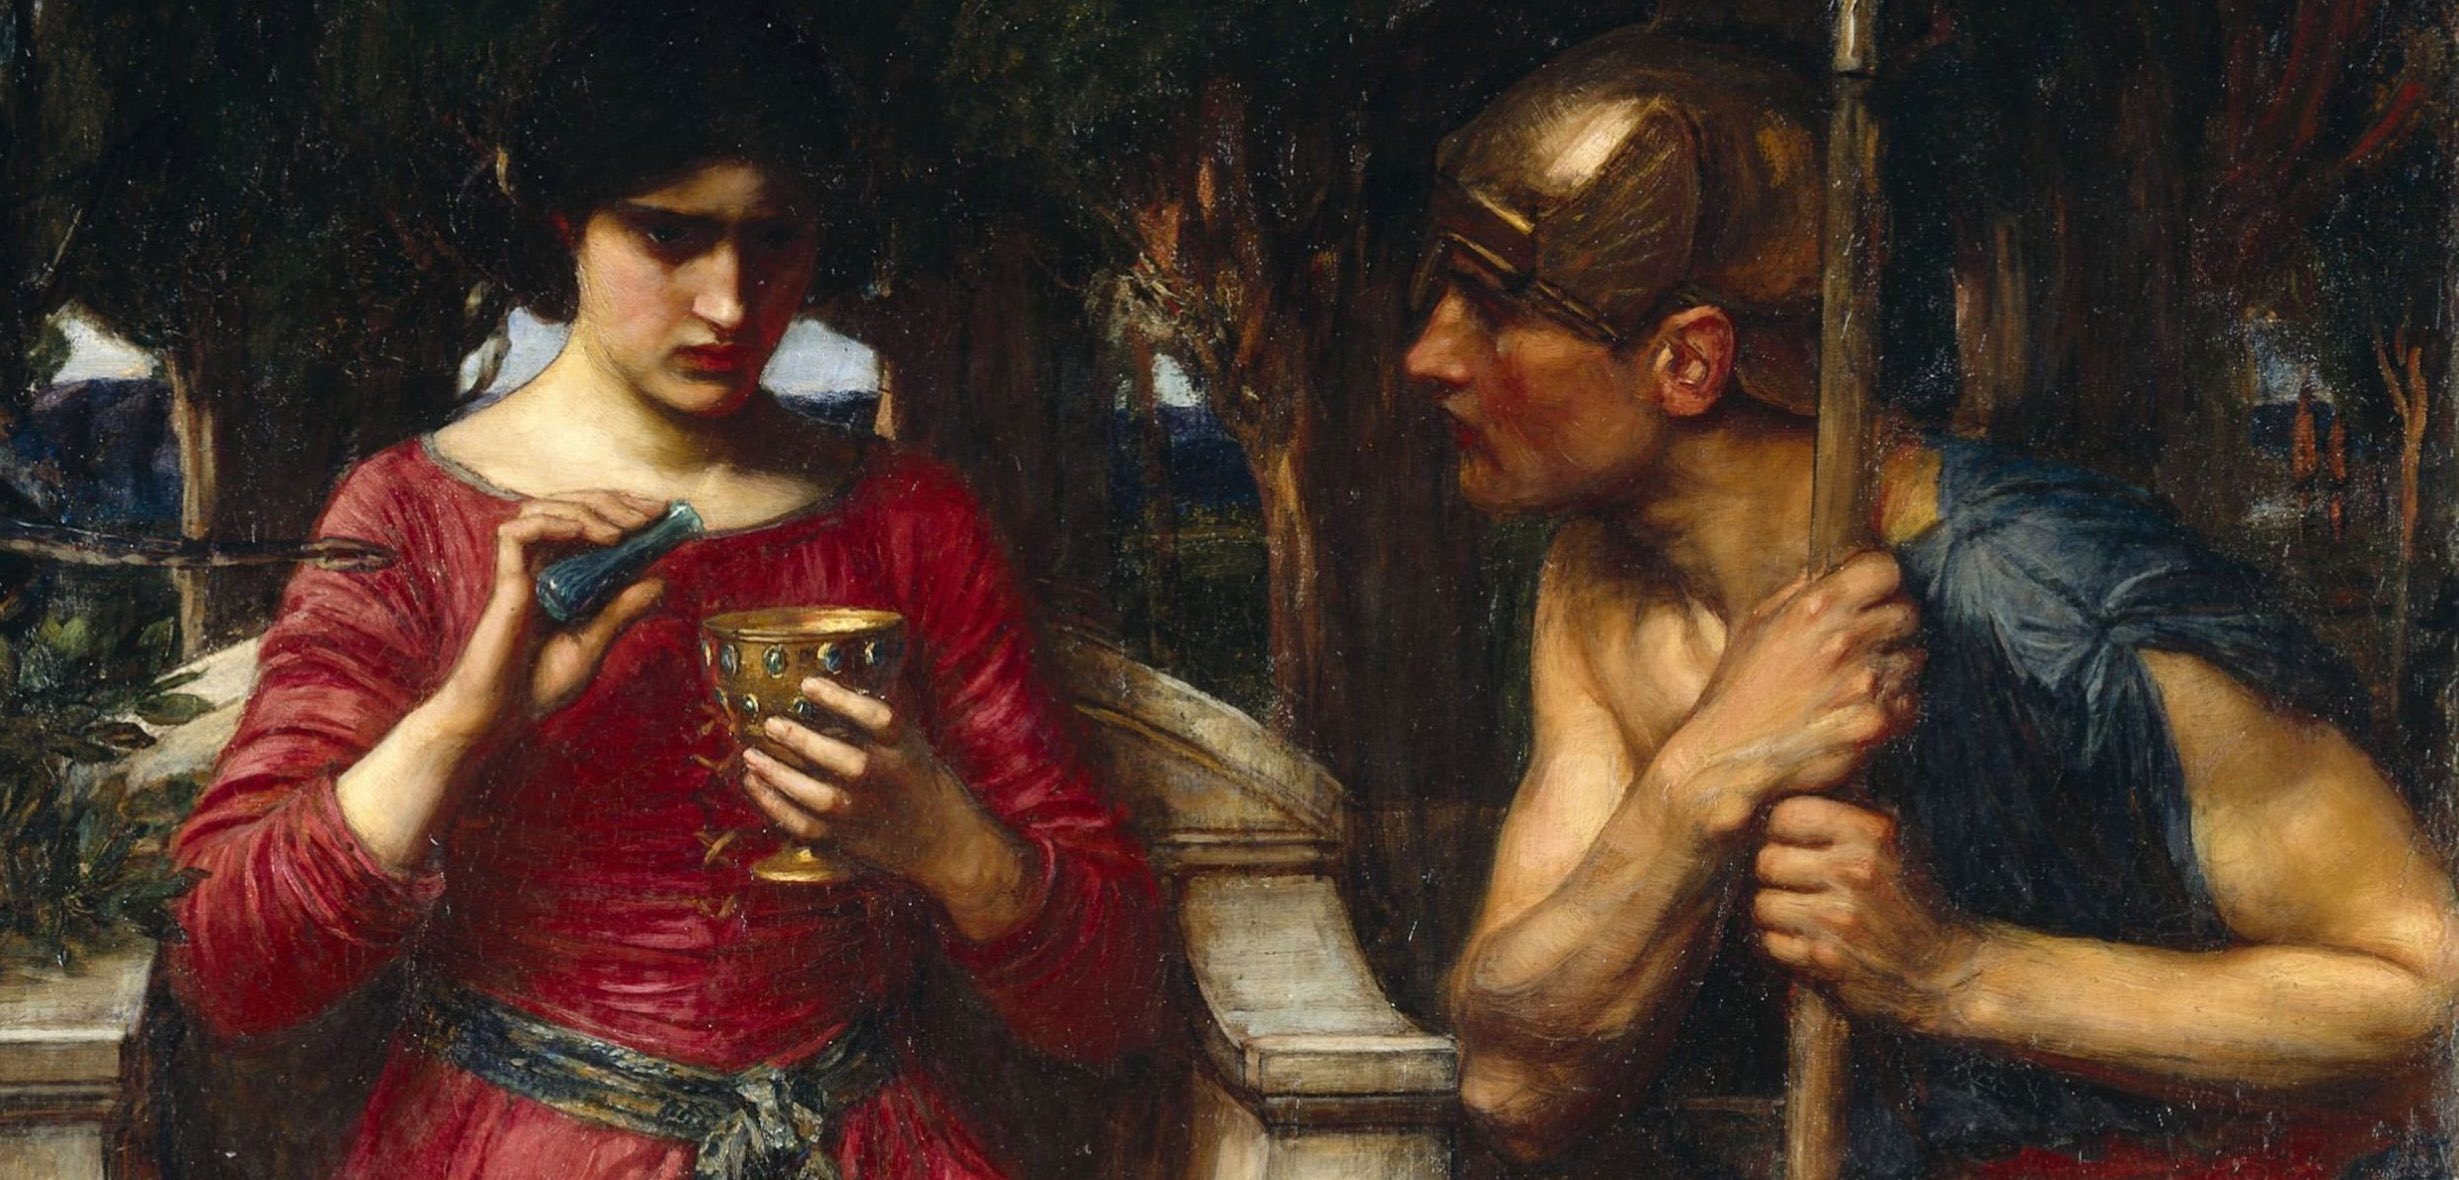 Jason_and_Medea_ 1907 clipped Waterhouse.jpg